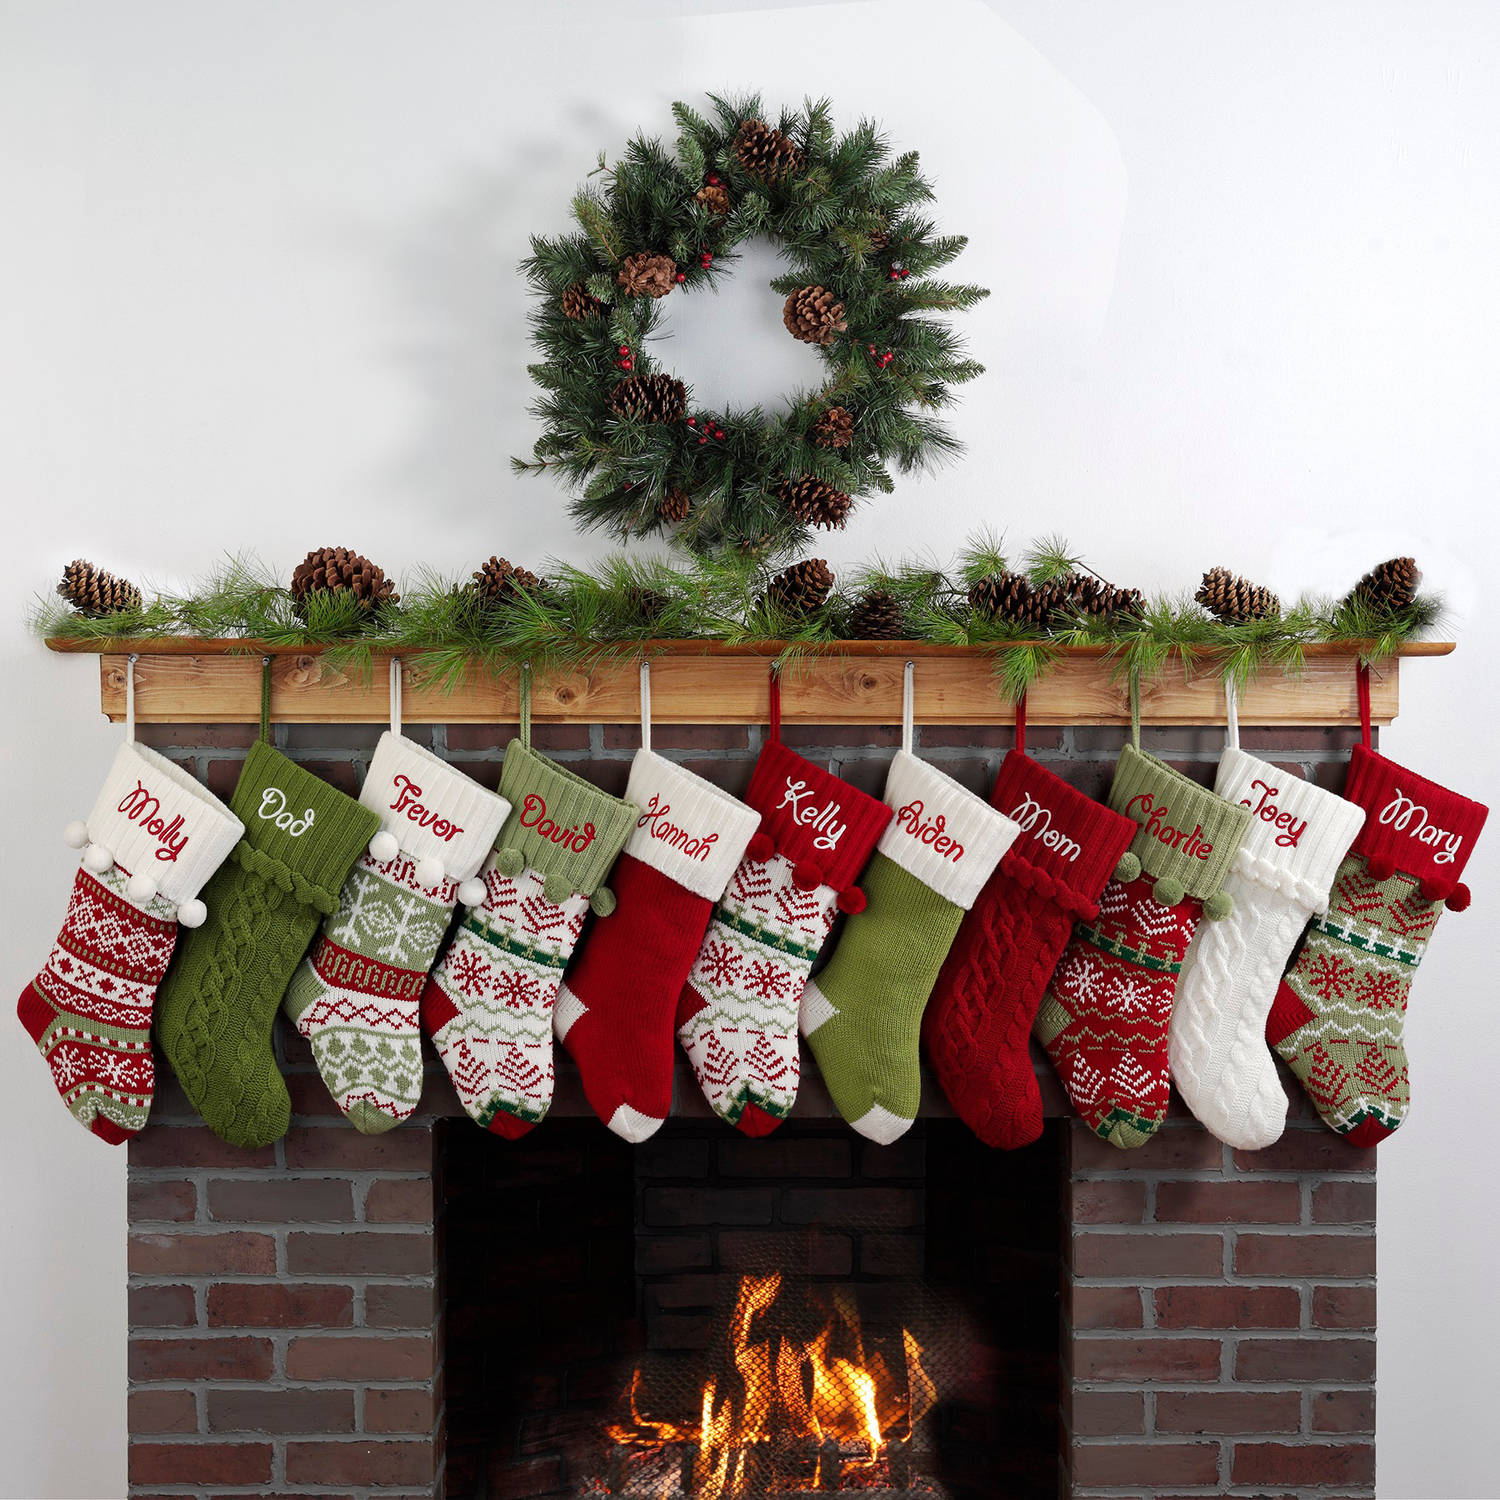 Best knit christmas stockings with multicolorful christmas stocking and fireplace at chistmas day interior design